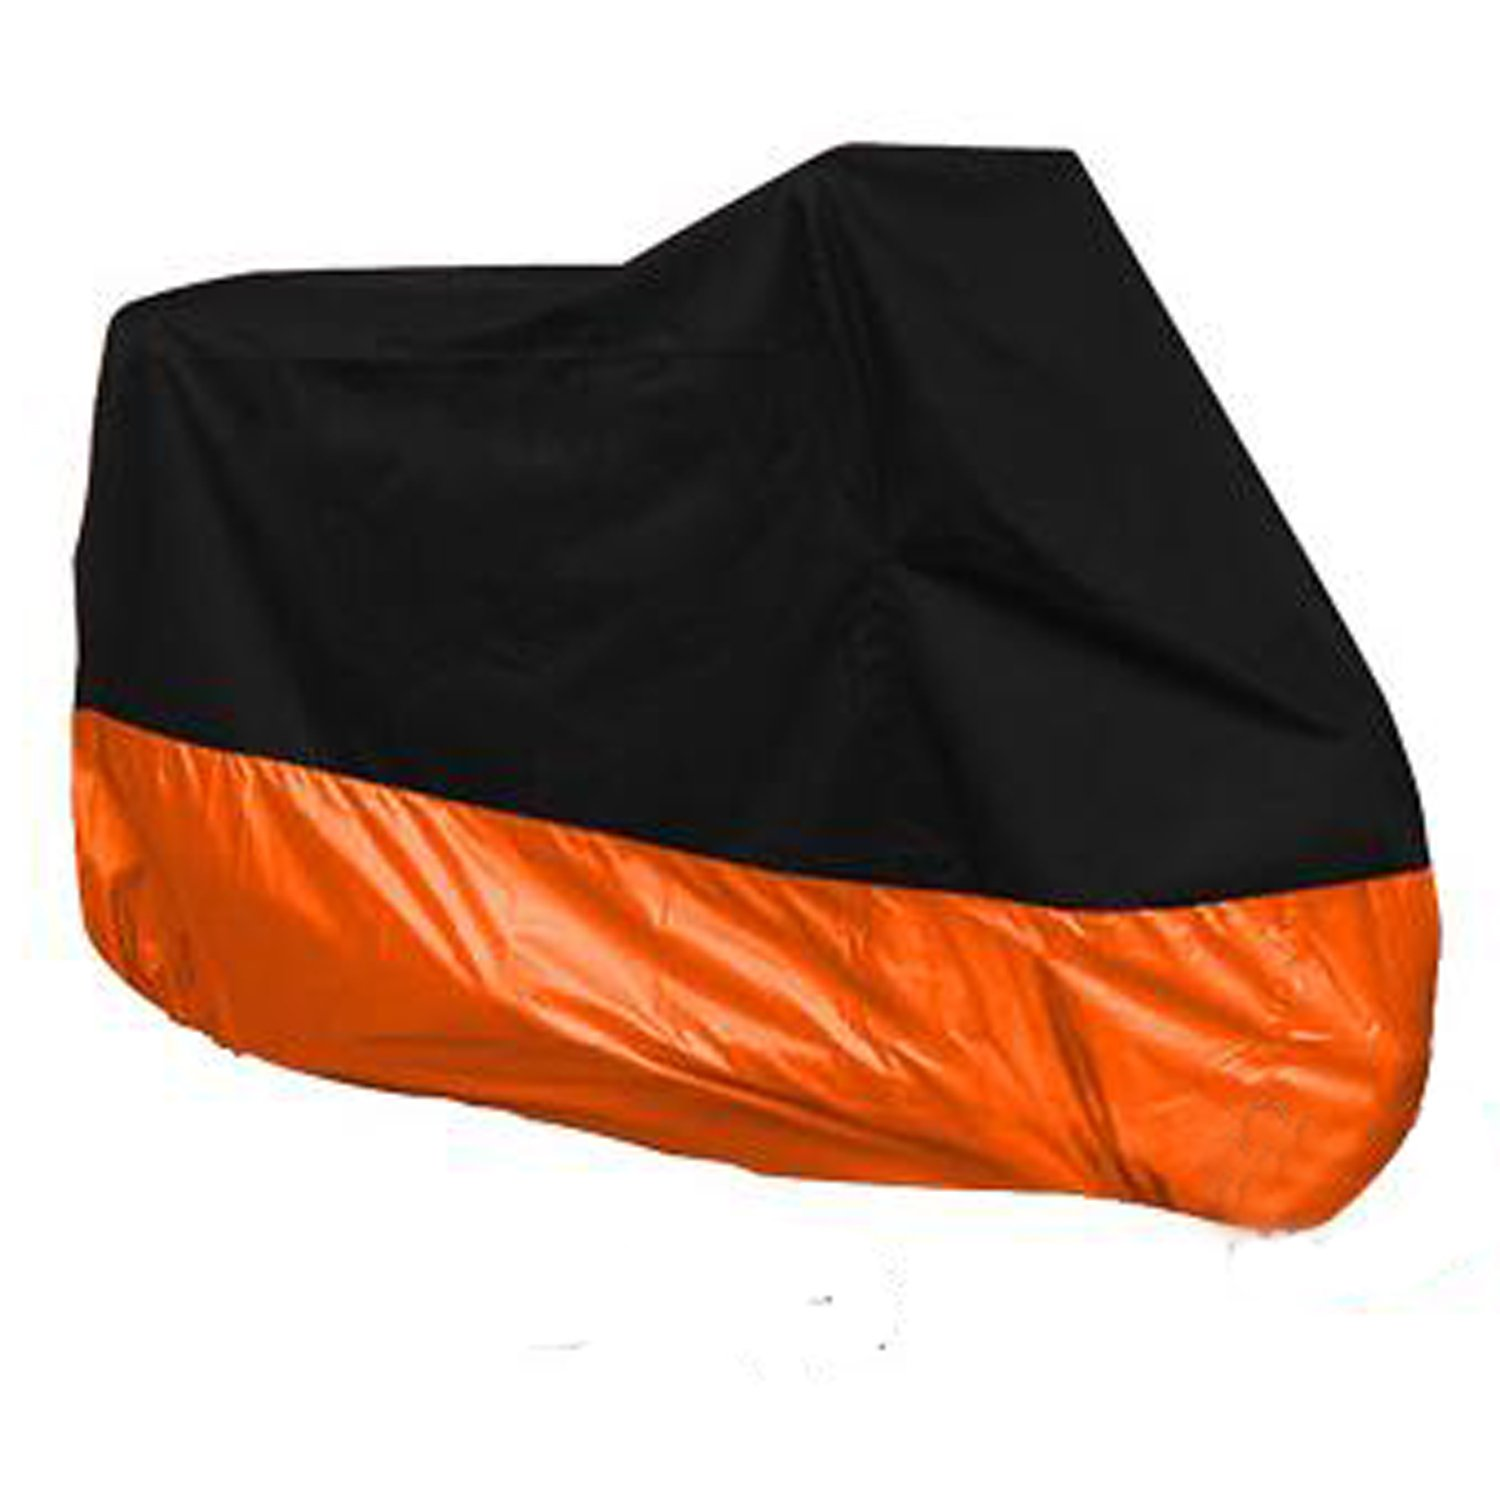 HANSWD Motorcycle Dust Cover Waterproof Uv Cover For Harley Davidson Yamaha Kawasaki Universal (XXXL, Black and Orange)